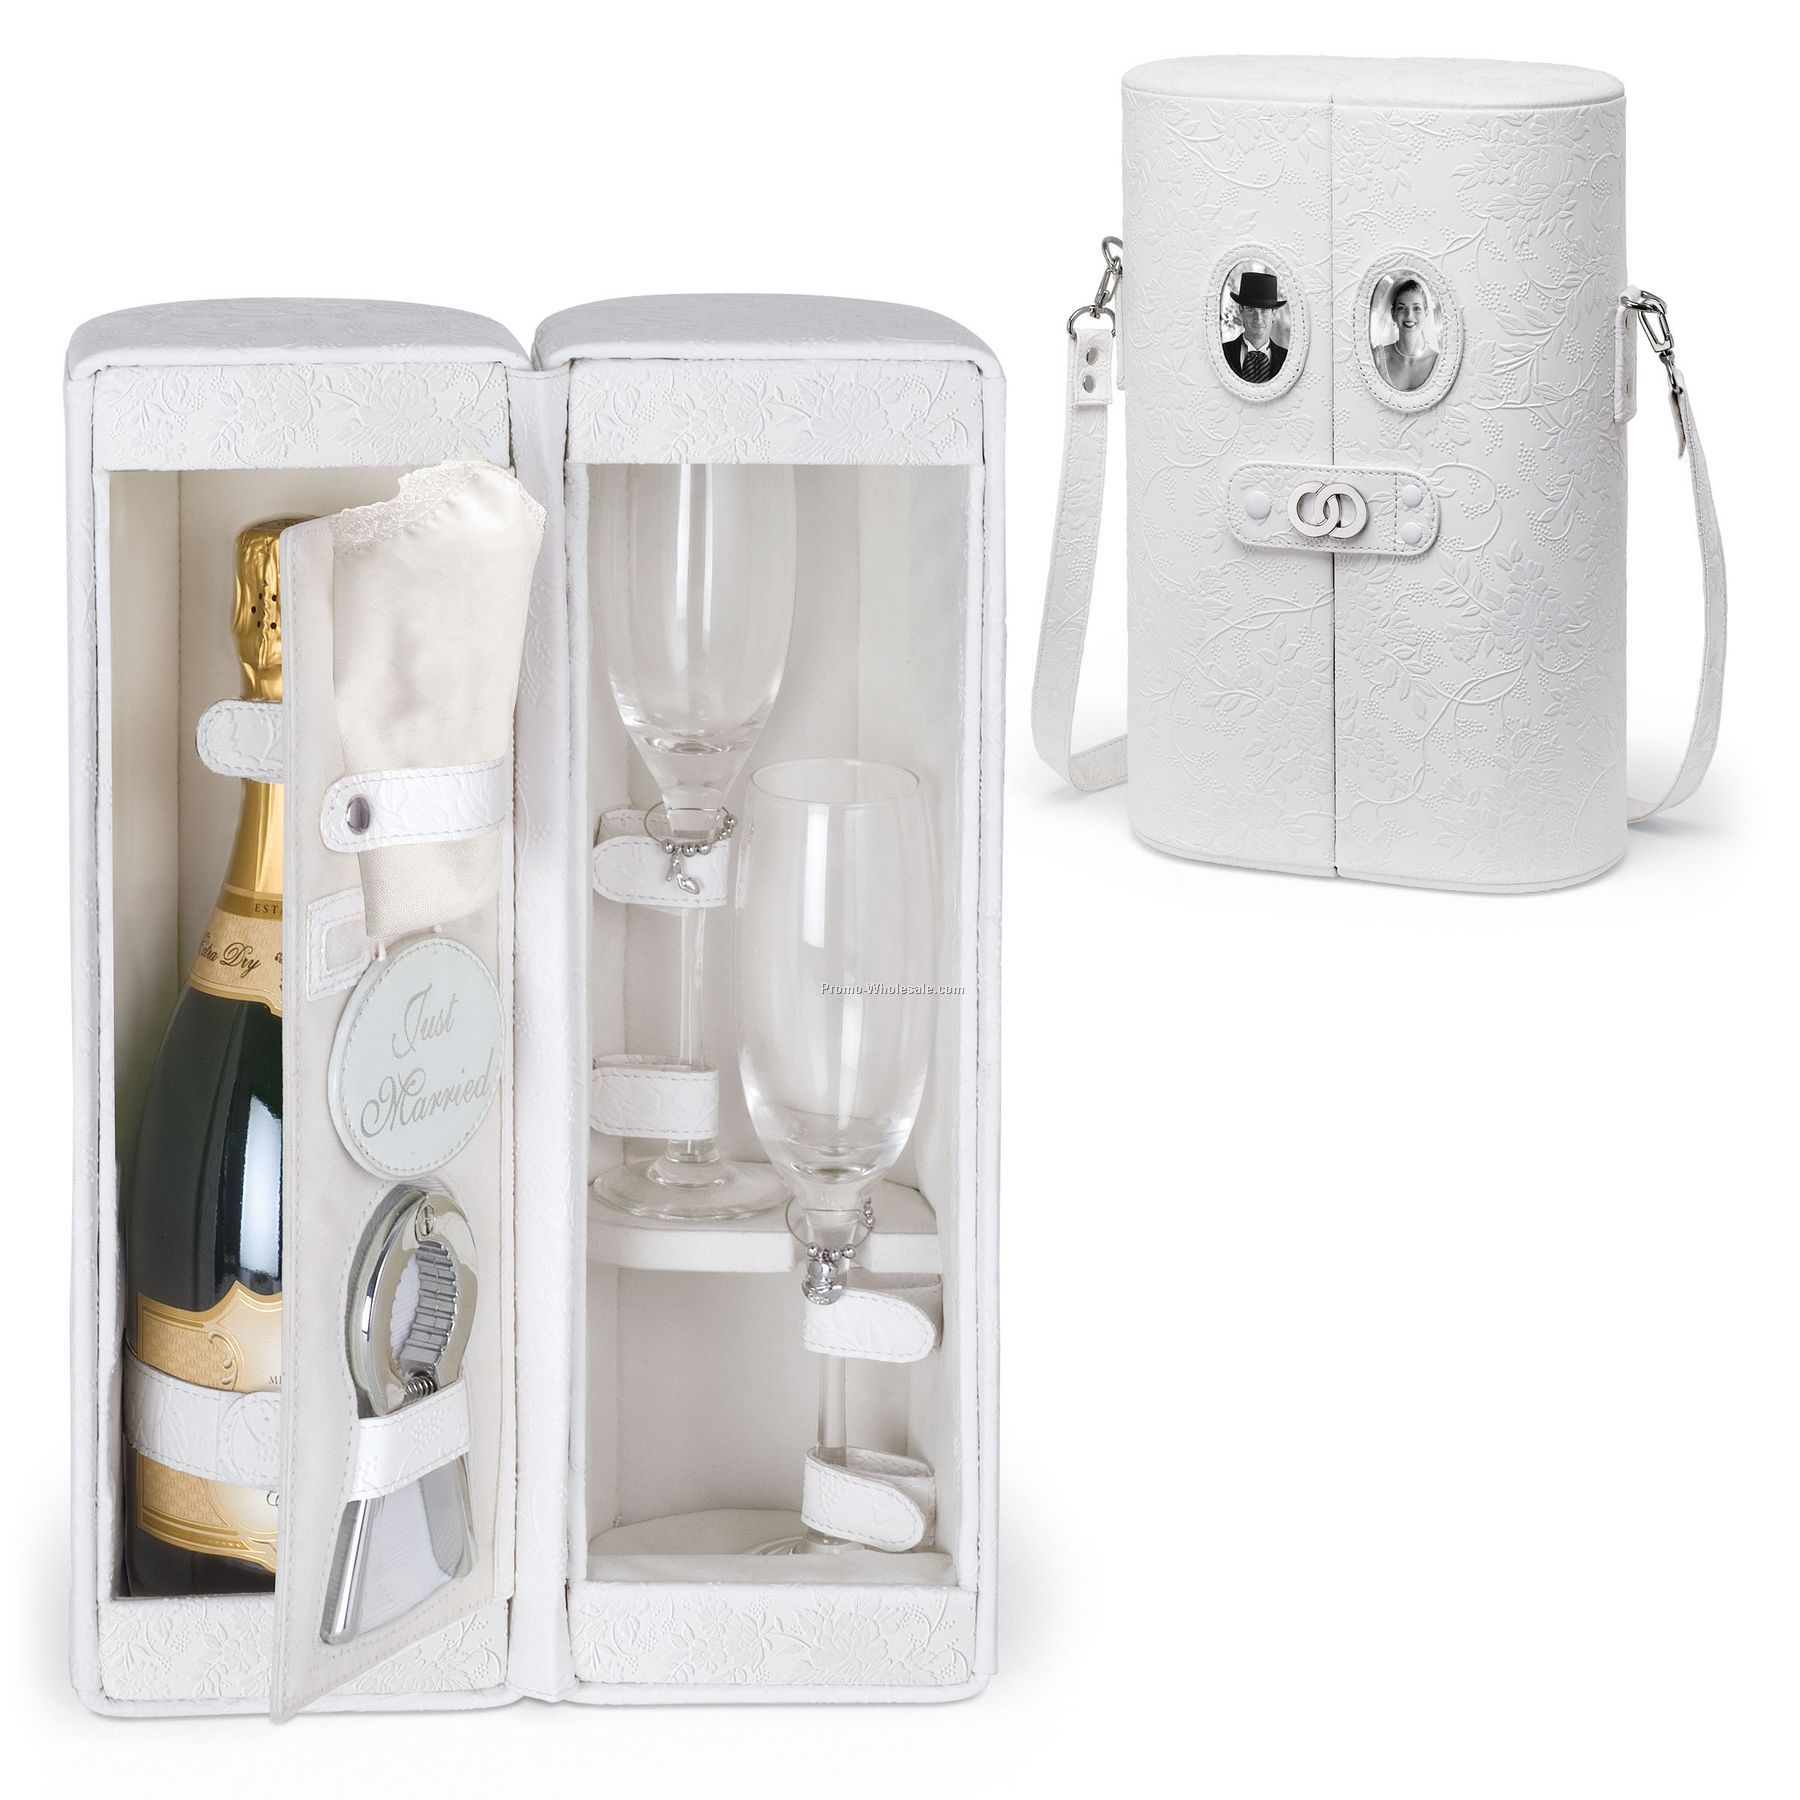 Harmony - Honeymoon Edition Single Bottle Champagne Case W/ Service For 2